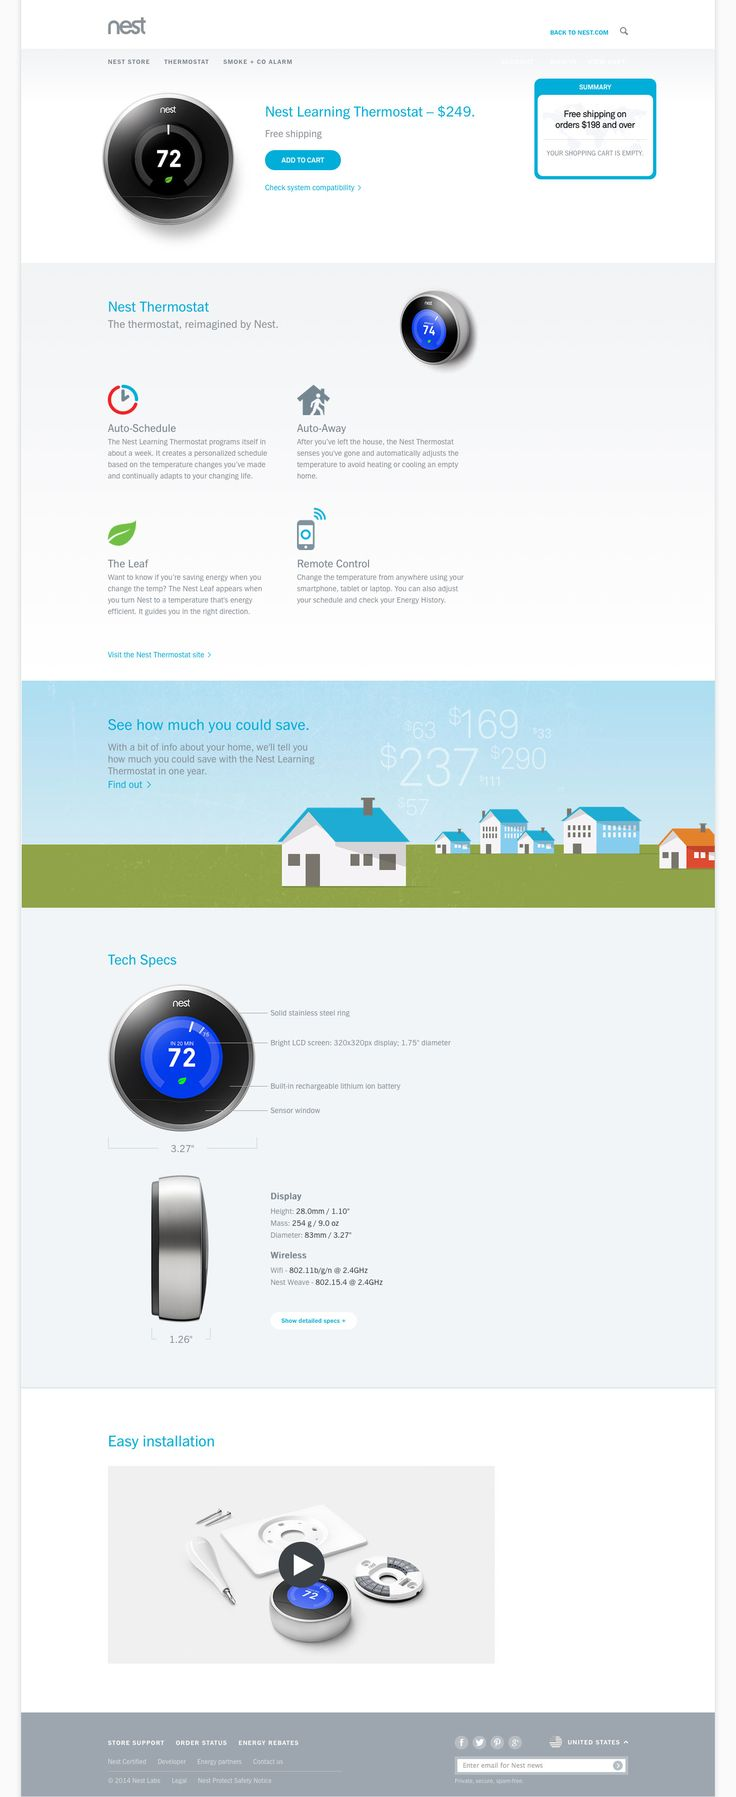 Nest Desktop Product Page - http://www.cartrepublic.com/gallery/2014/09/nest-desktop-product-page/